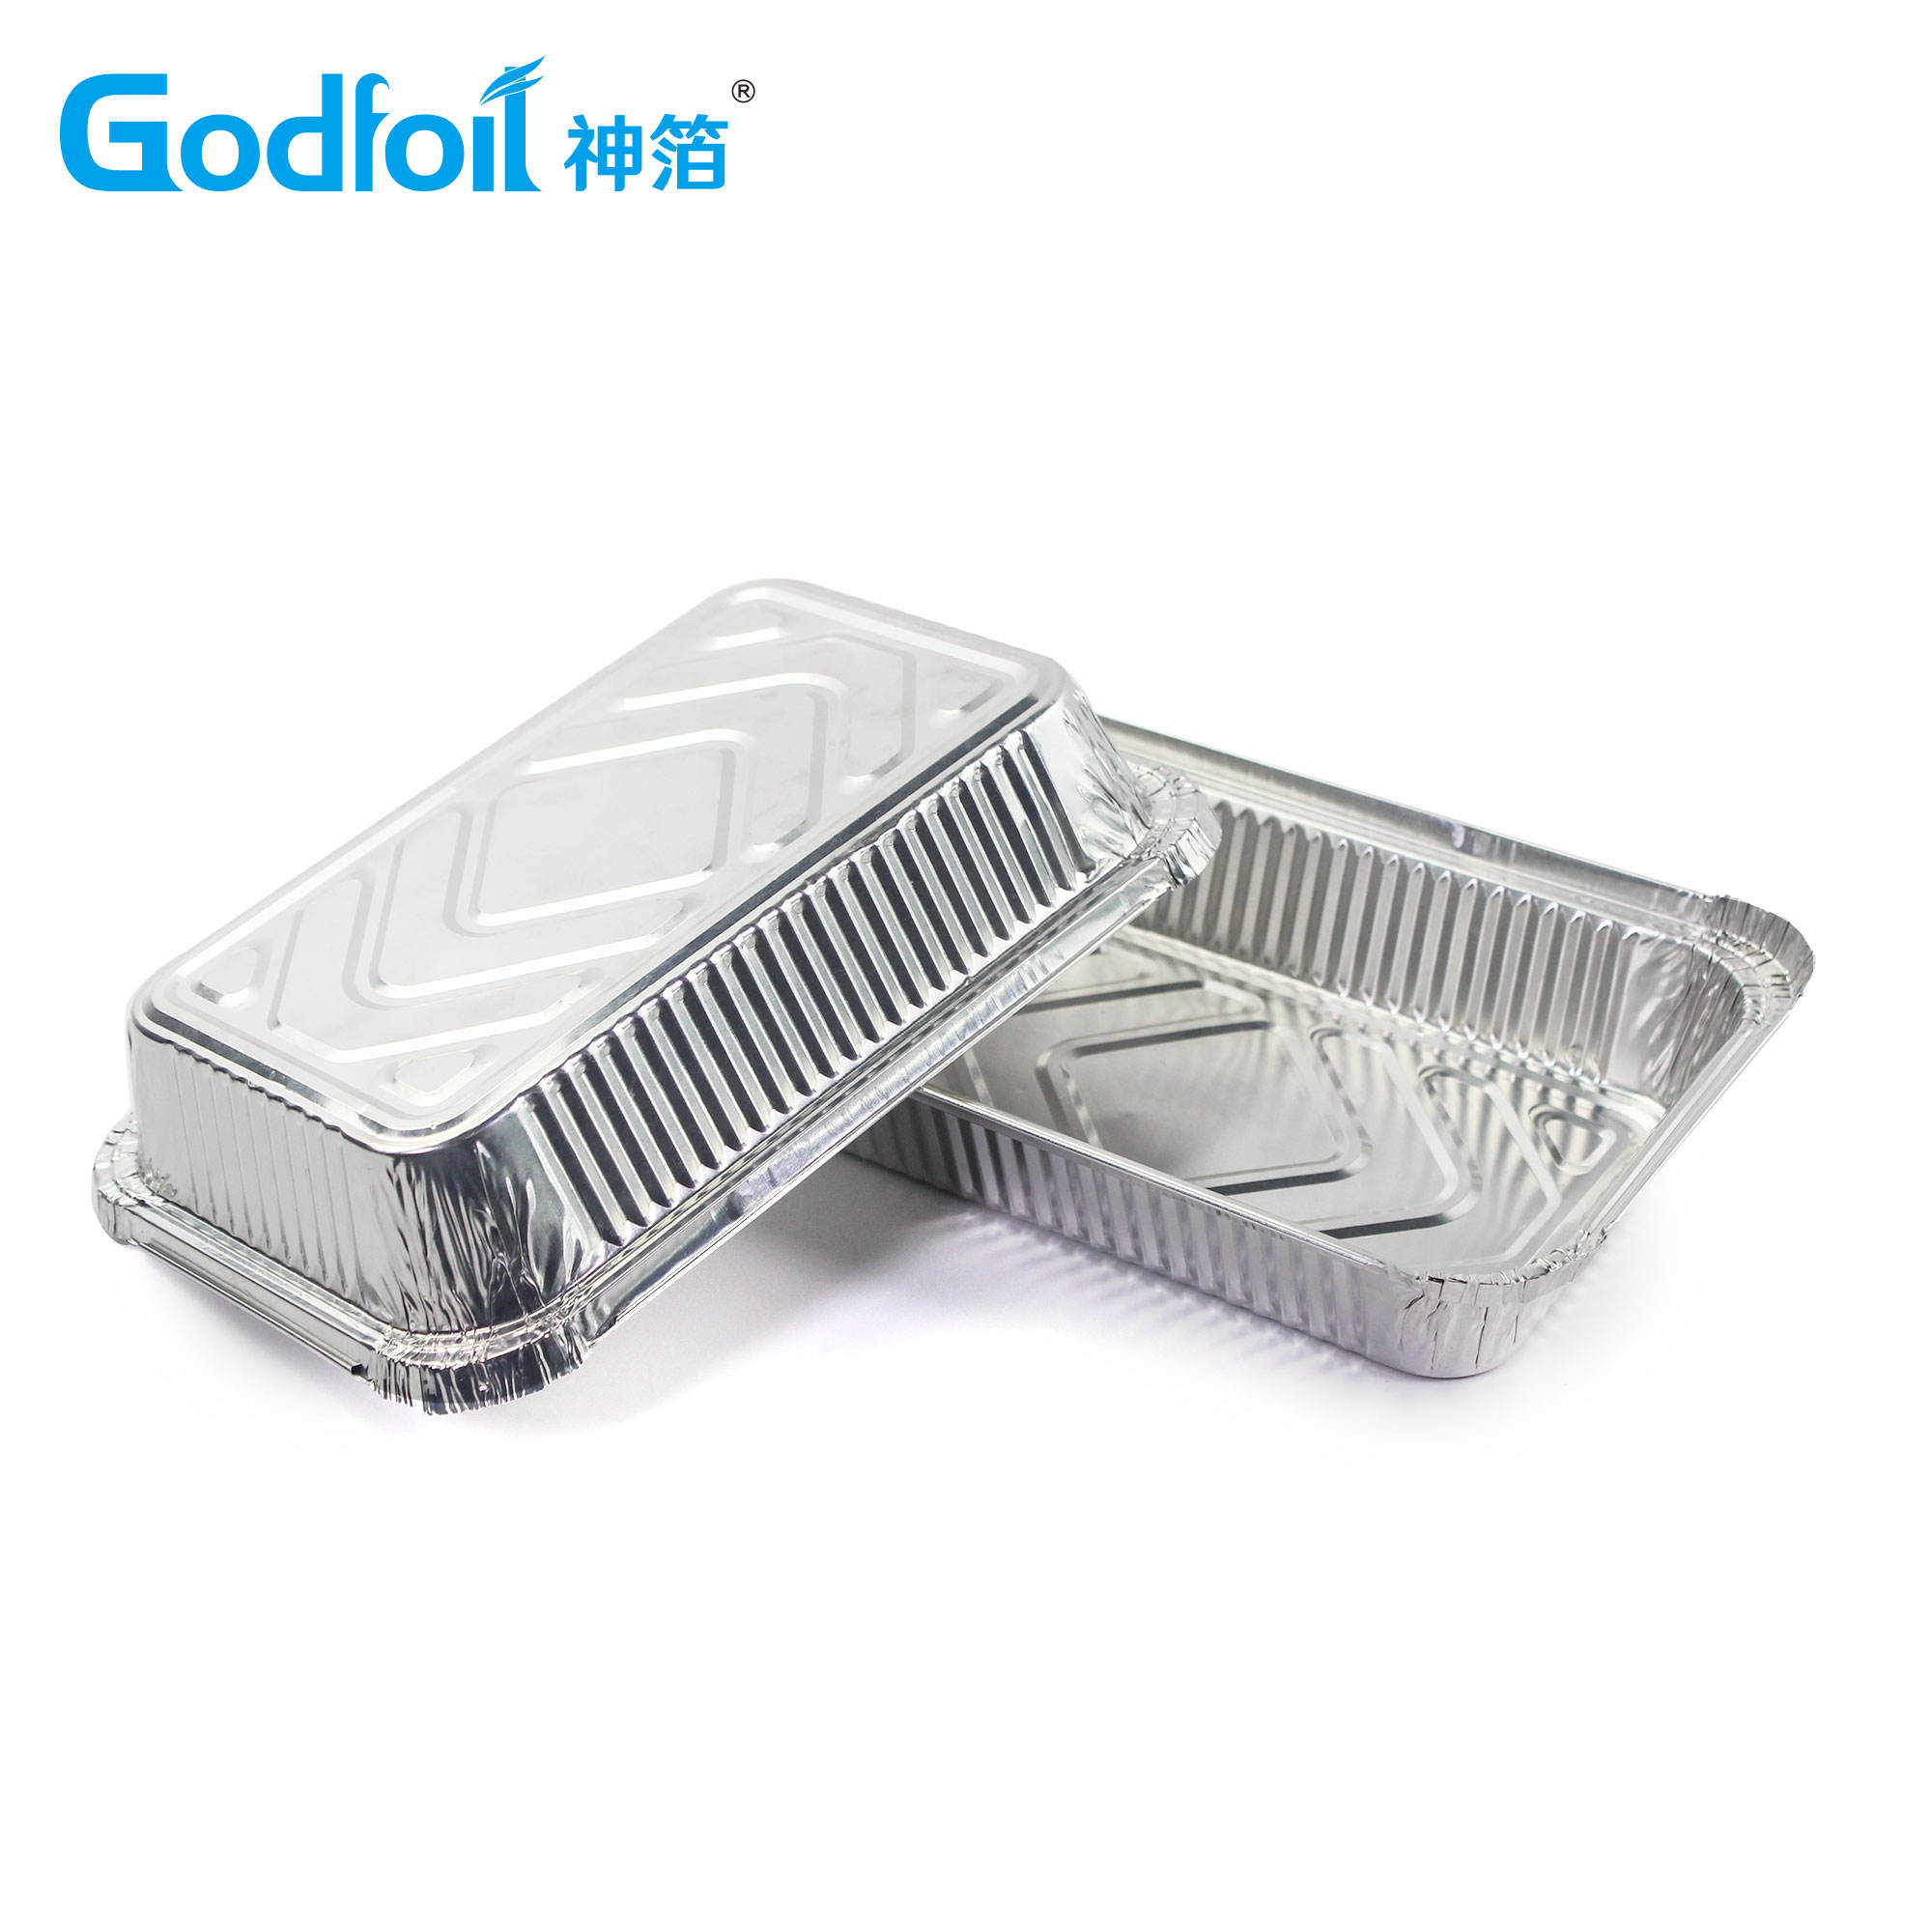 Oblong Heavy Duty Disposable Aluminum Foil Container Aluminum Foil Tray For Daily Use